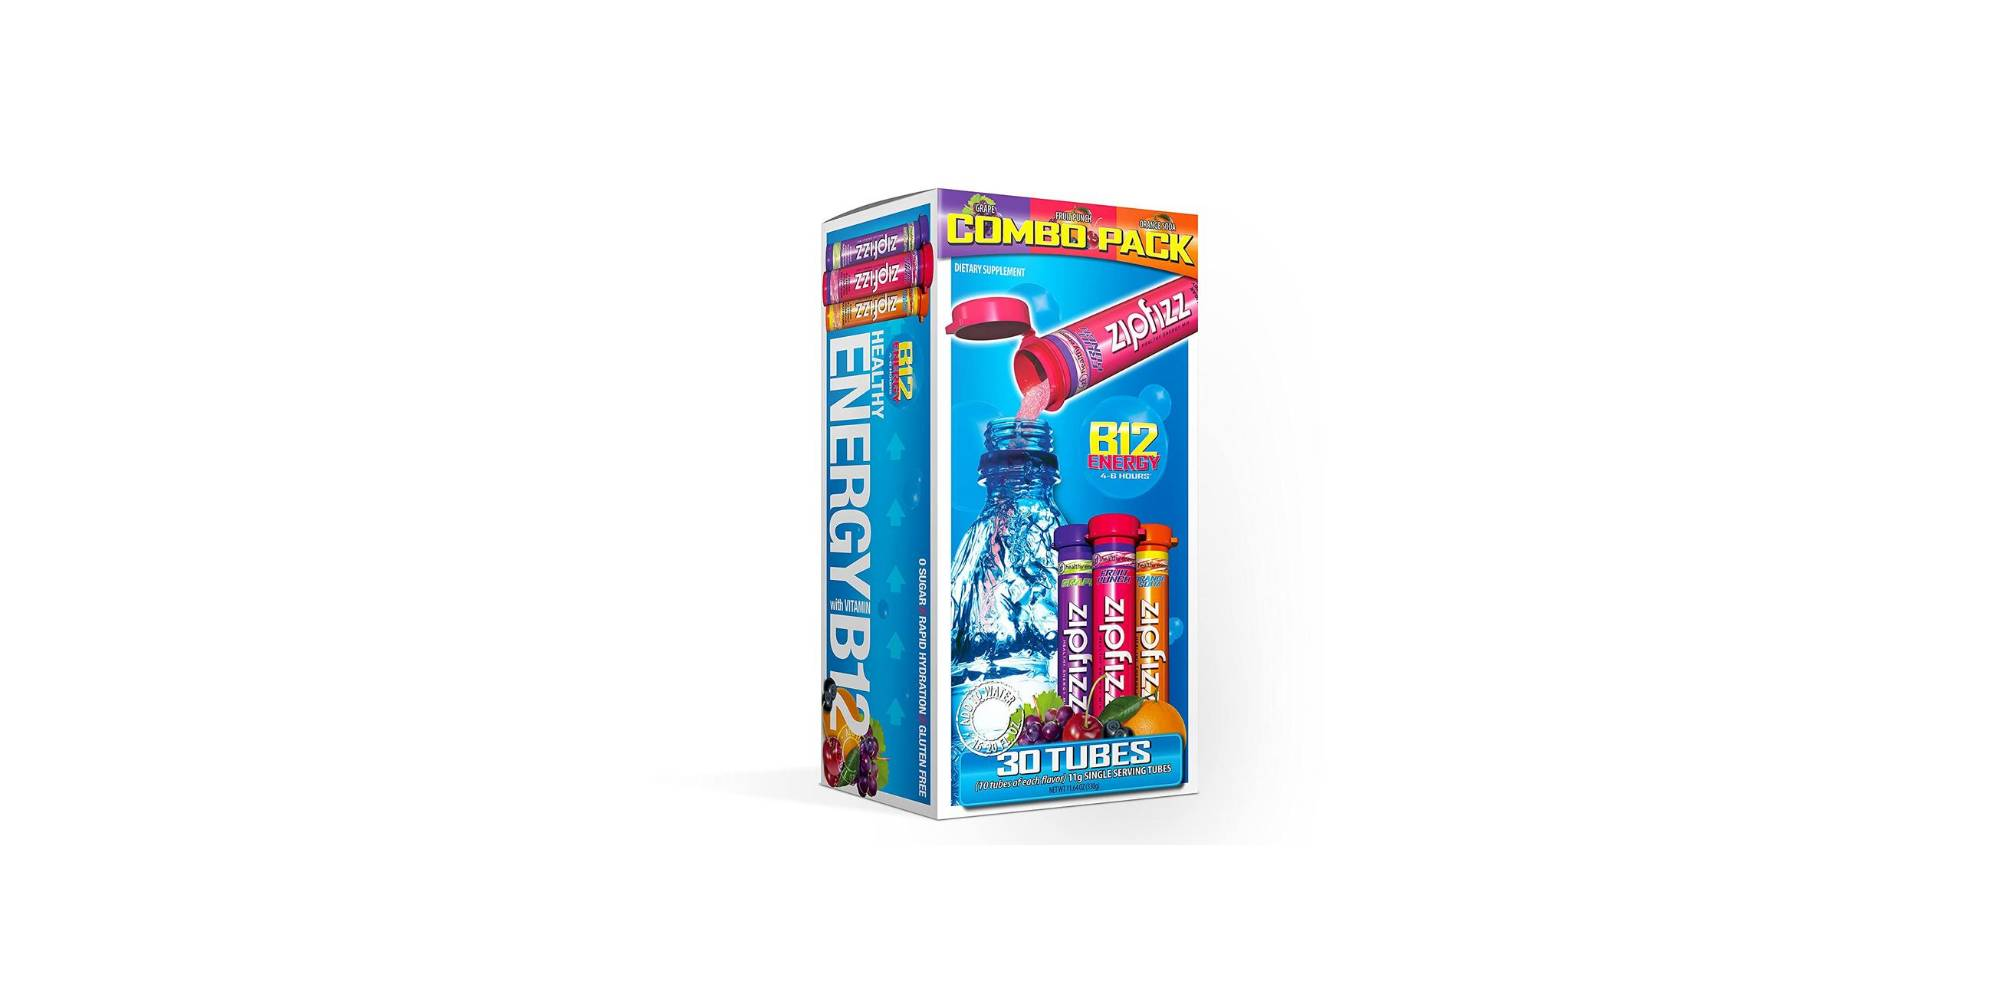 Zipfizz Electrolyte Healthy Energy Drink